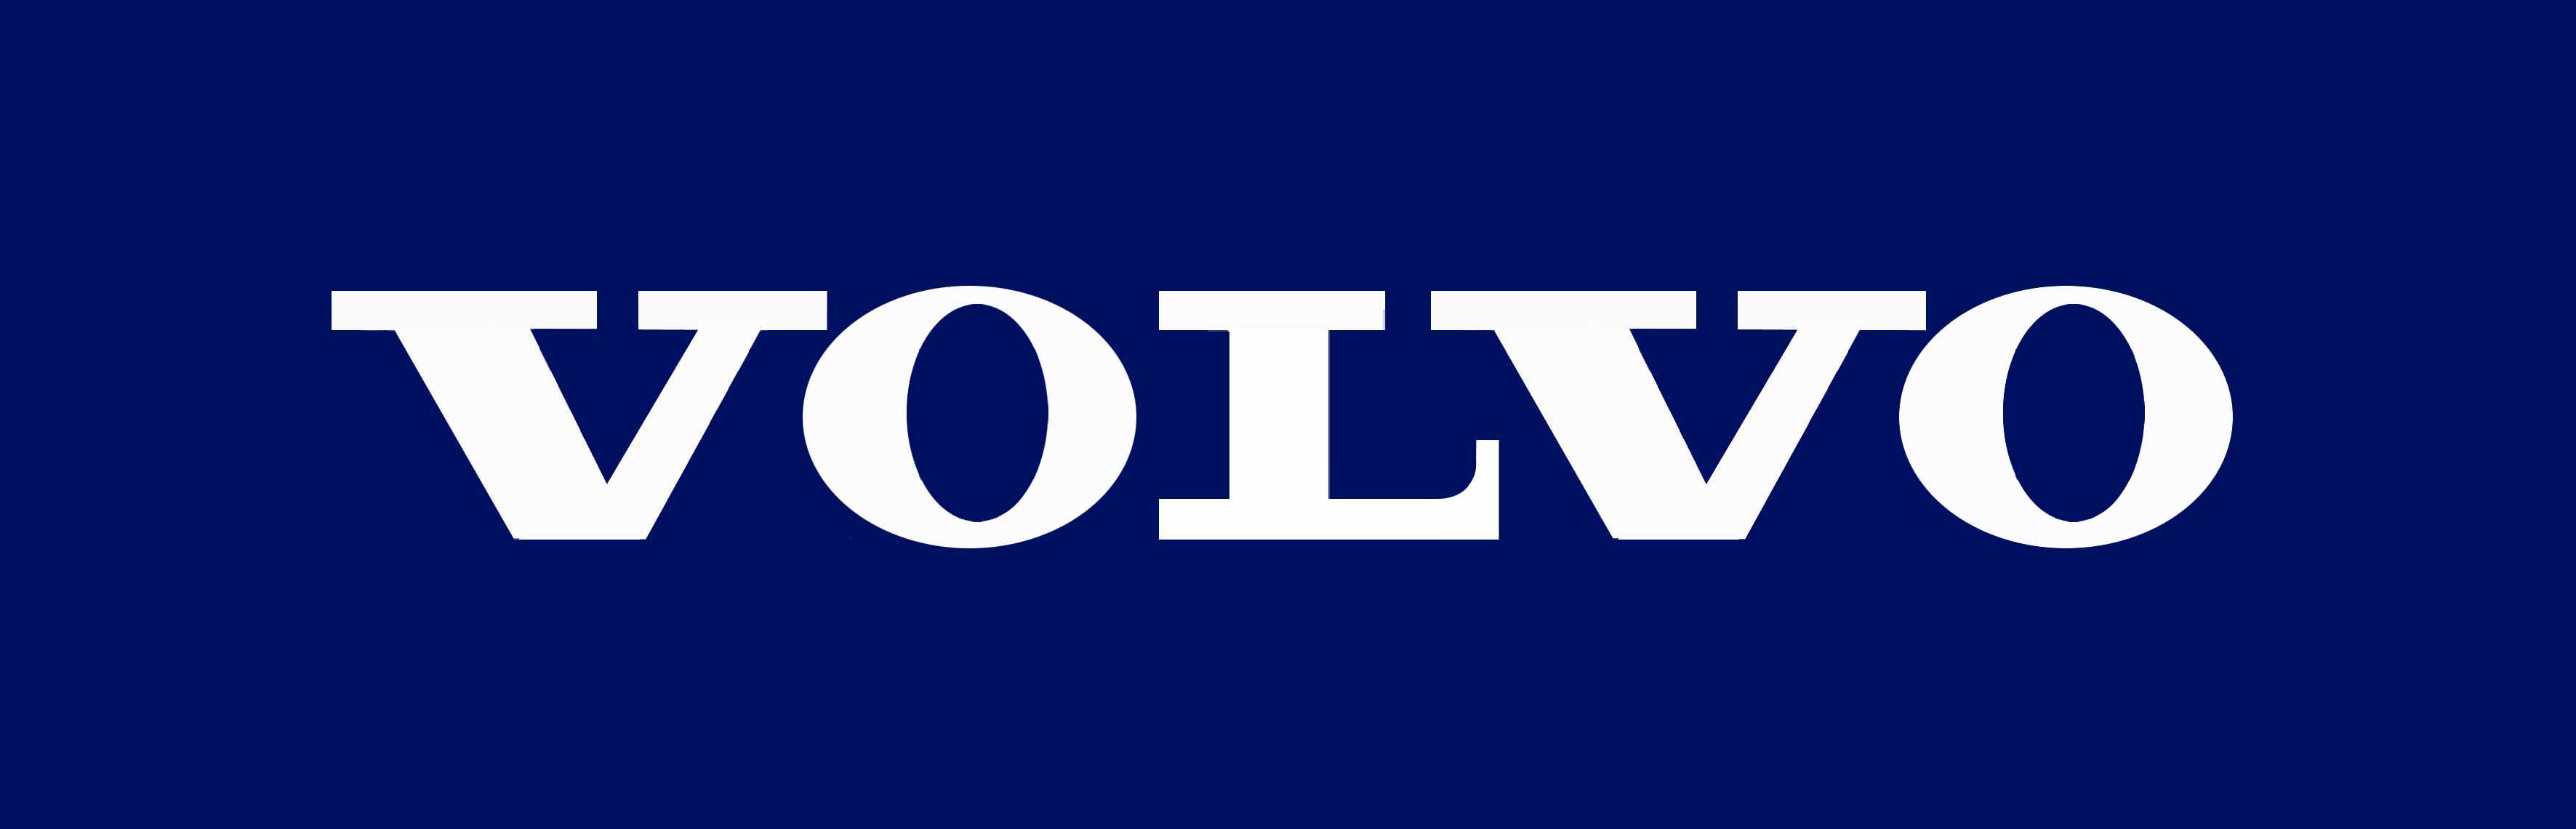 Volvo Logo Volvo Car Symbol Meaning And History Car